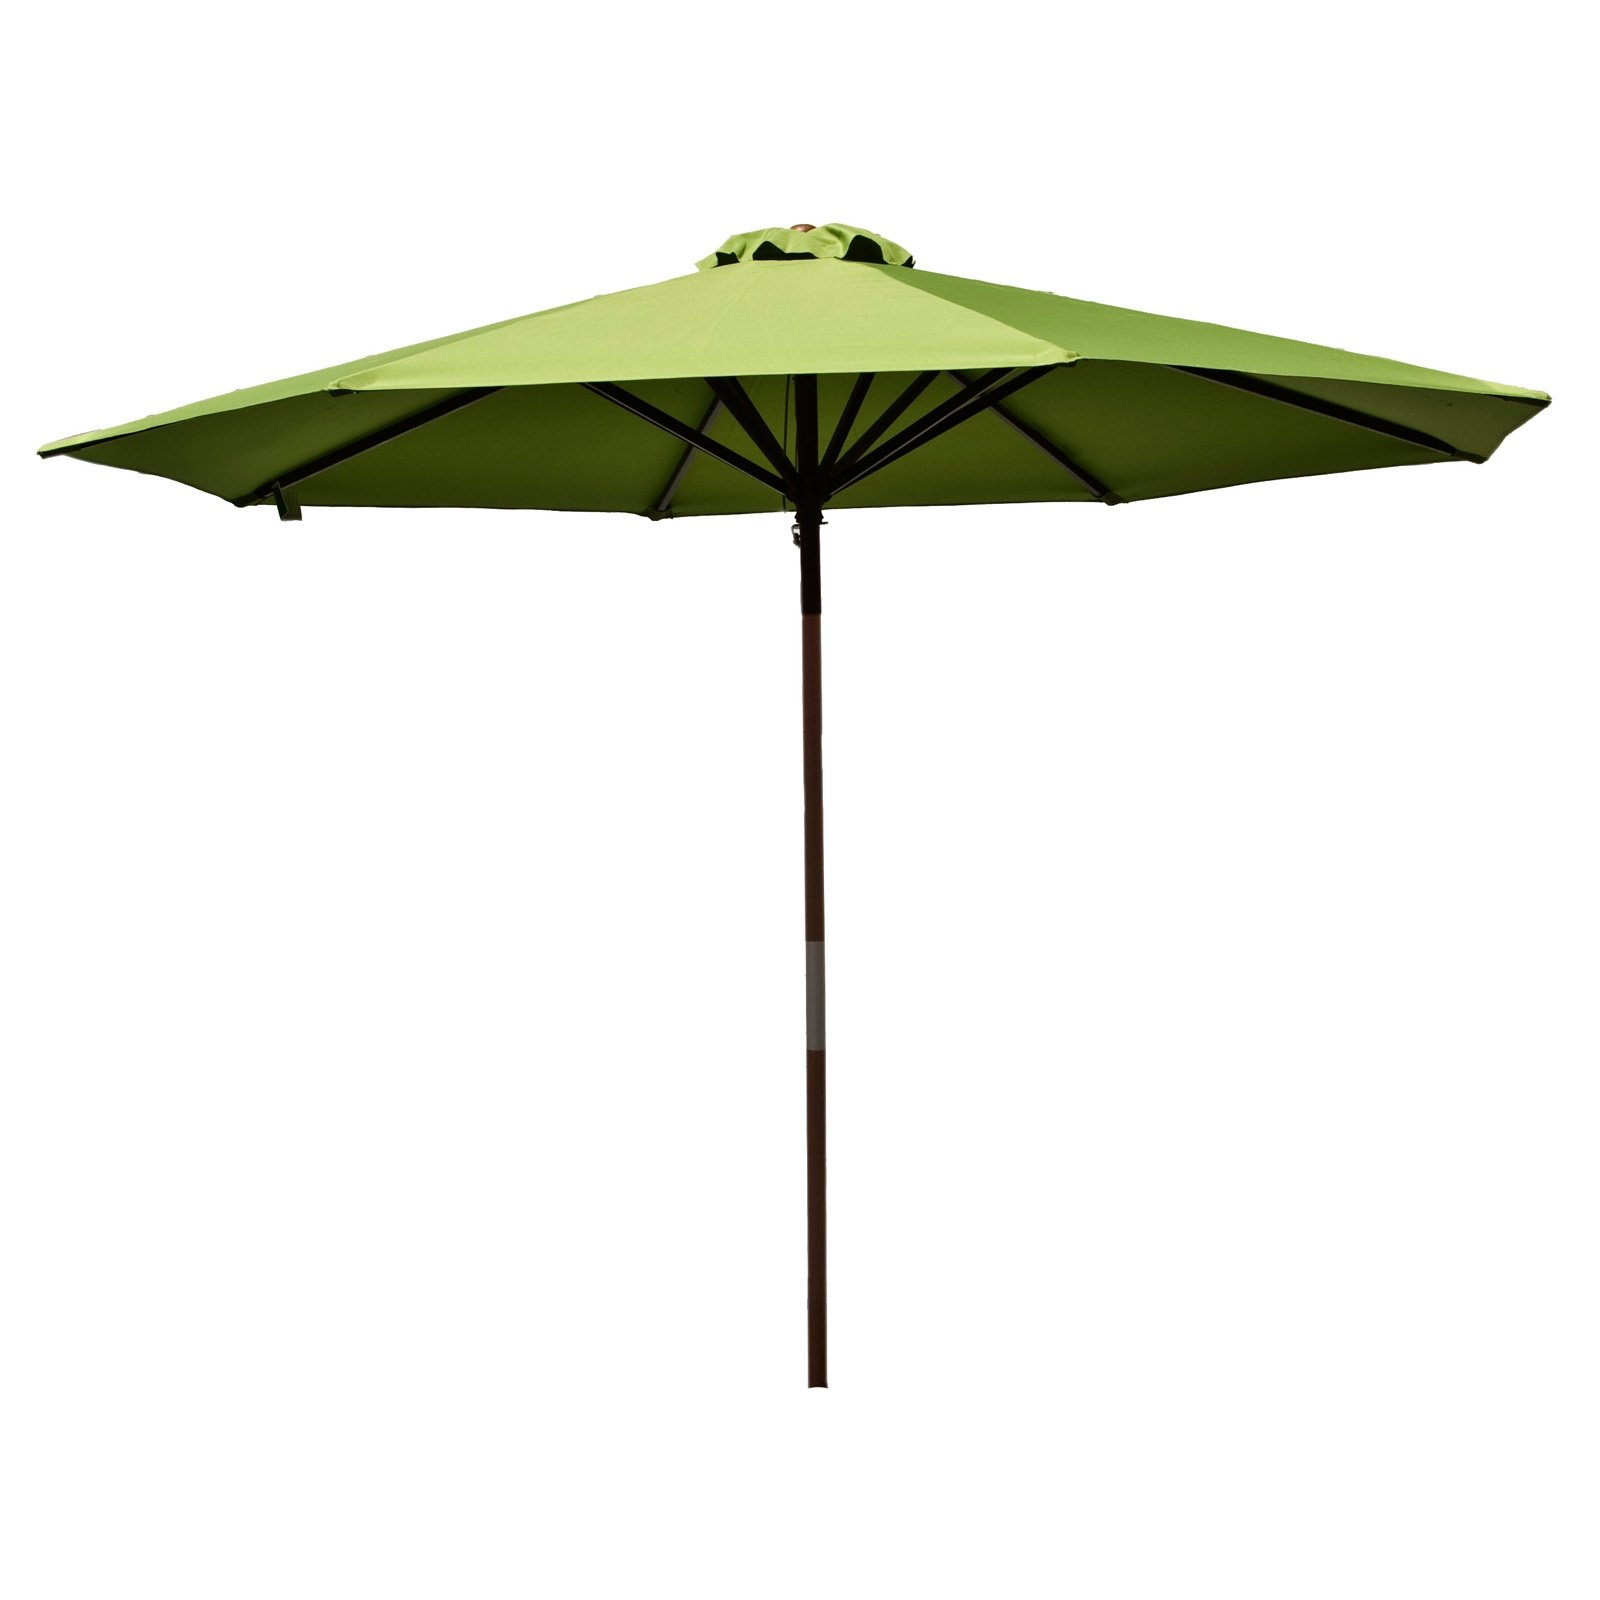 9ft Market Umbrella Classic Outdoor Home Patio Sun Canopy Shelter - Lime